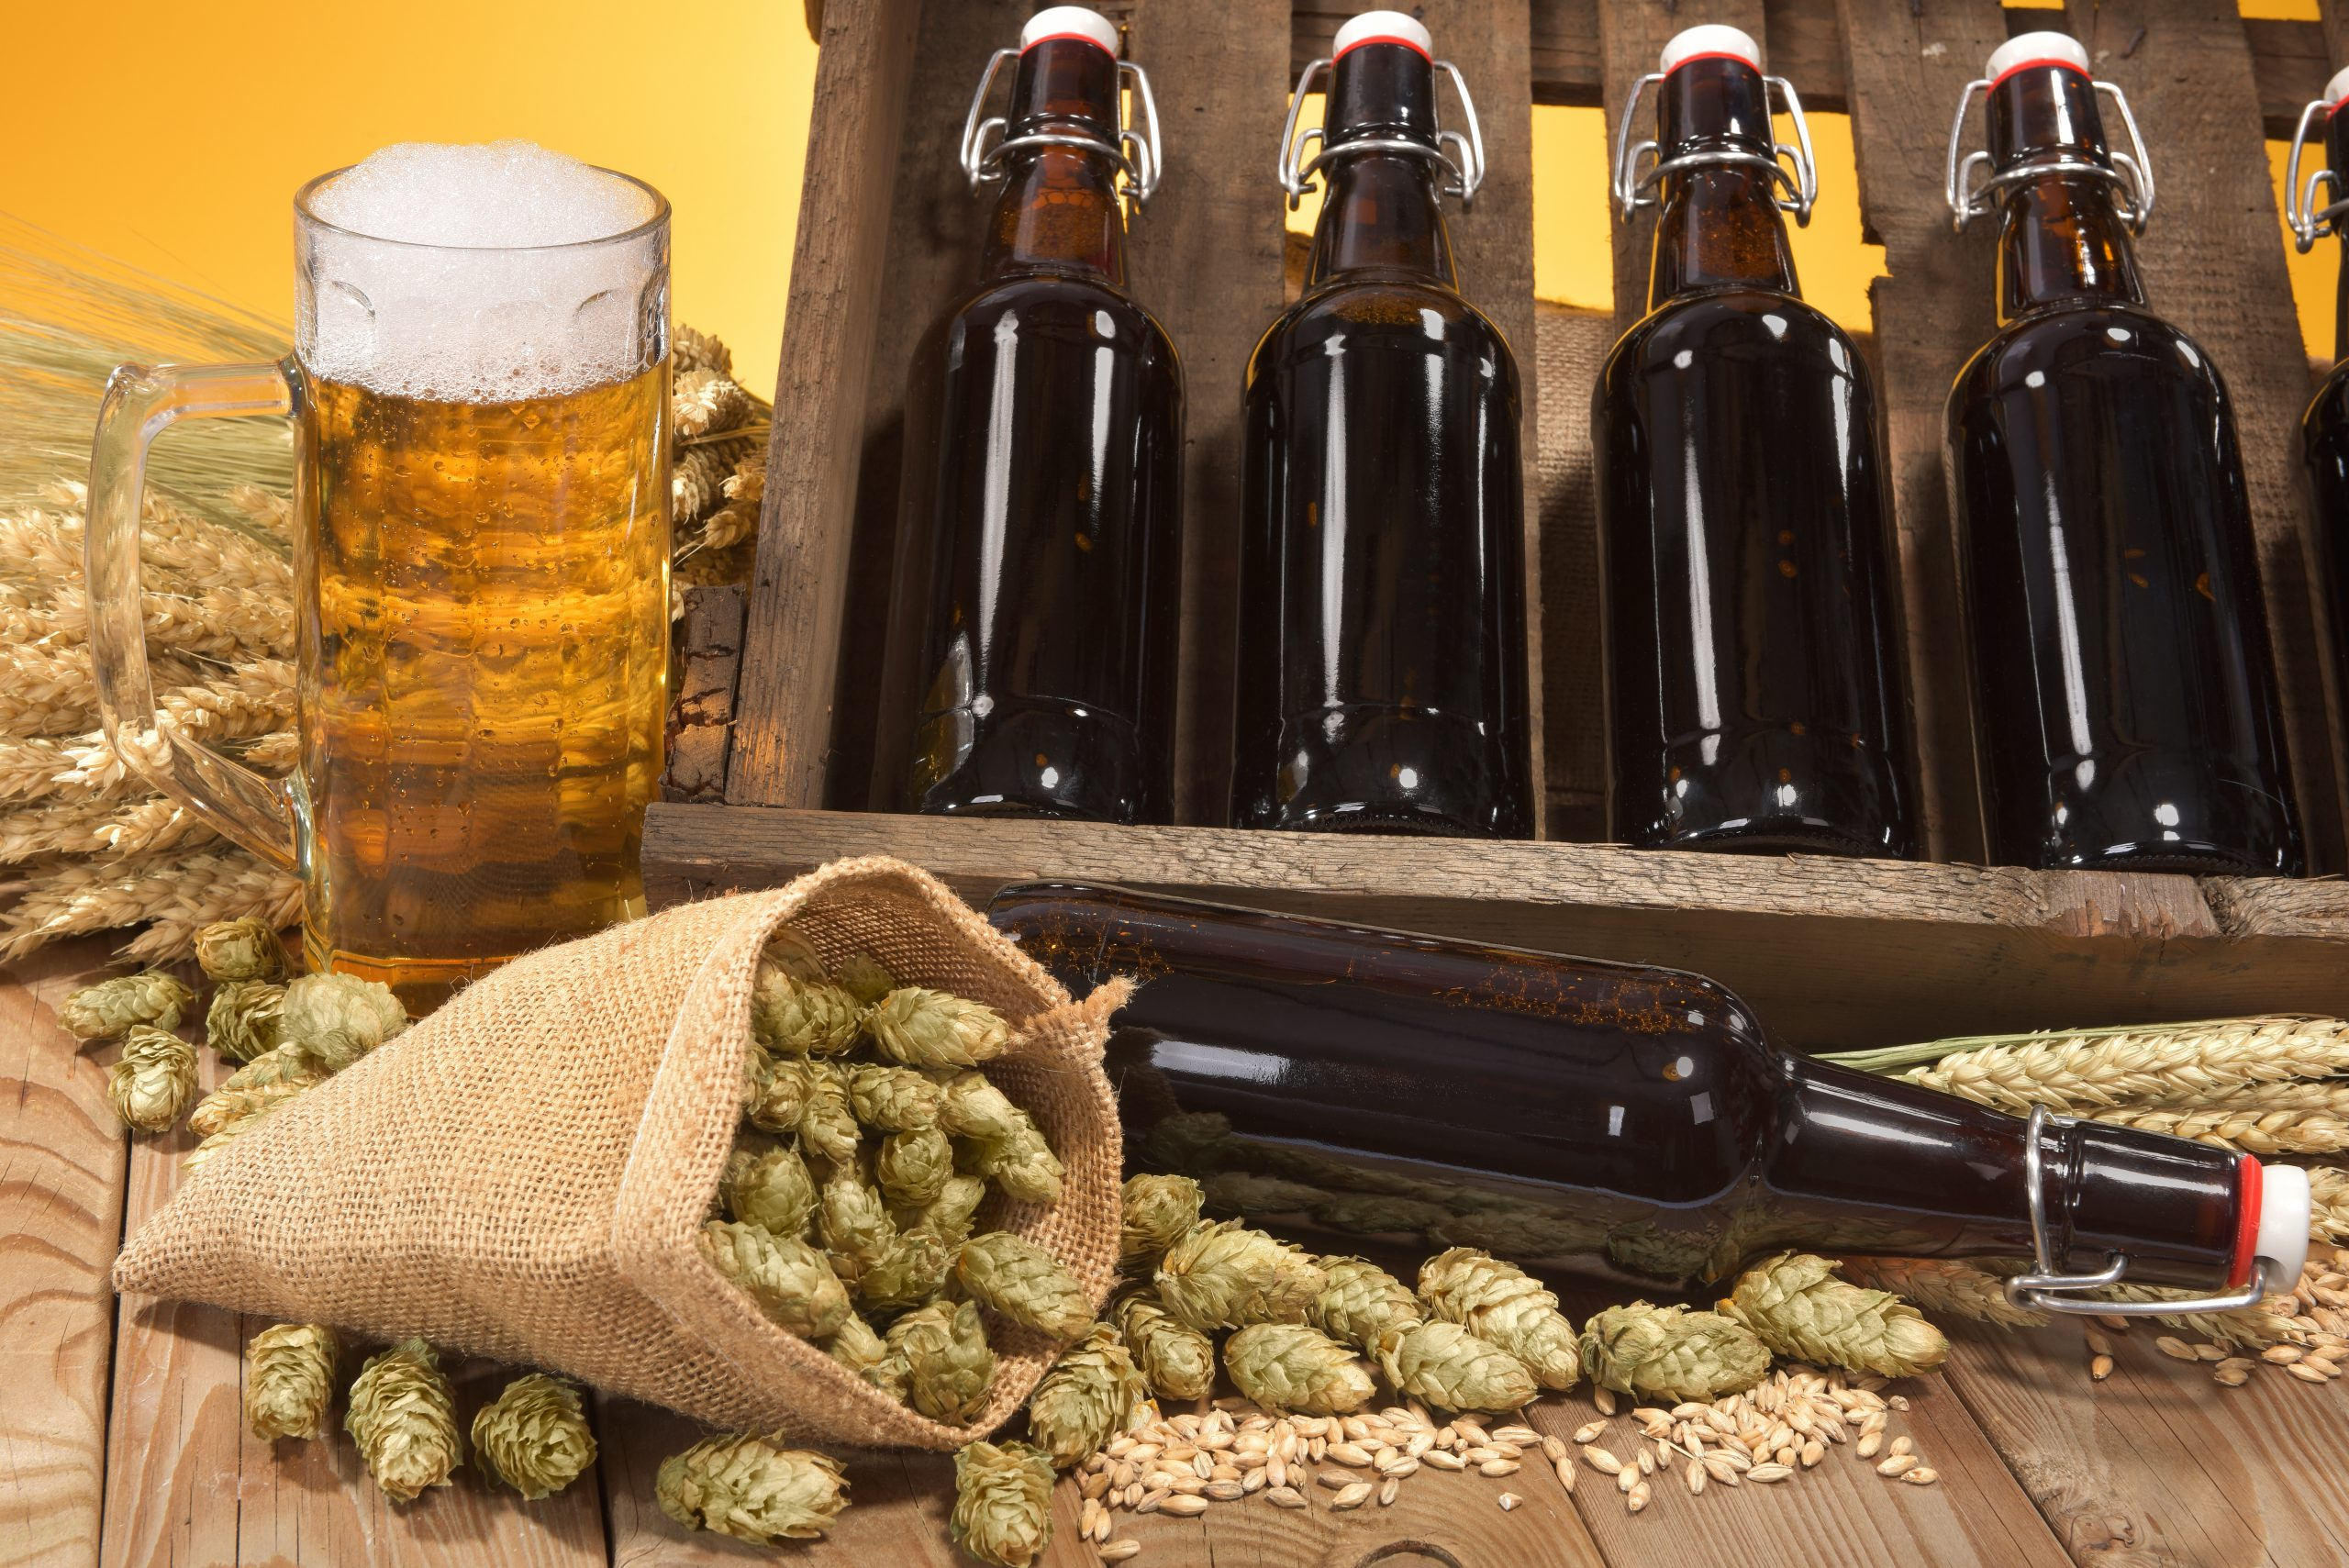 malt barley yeast hops ingredients